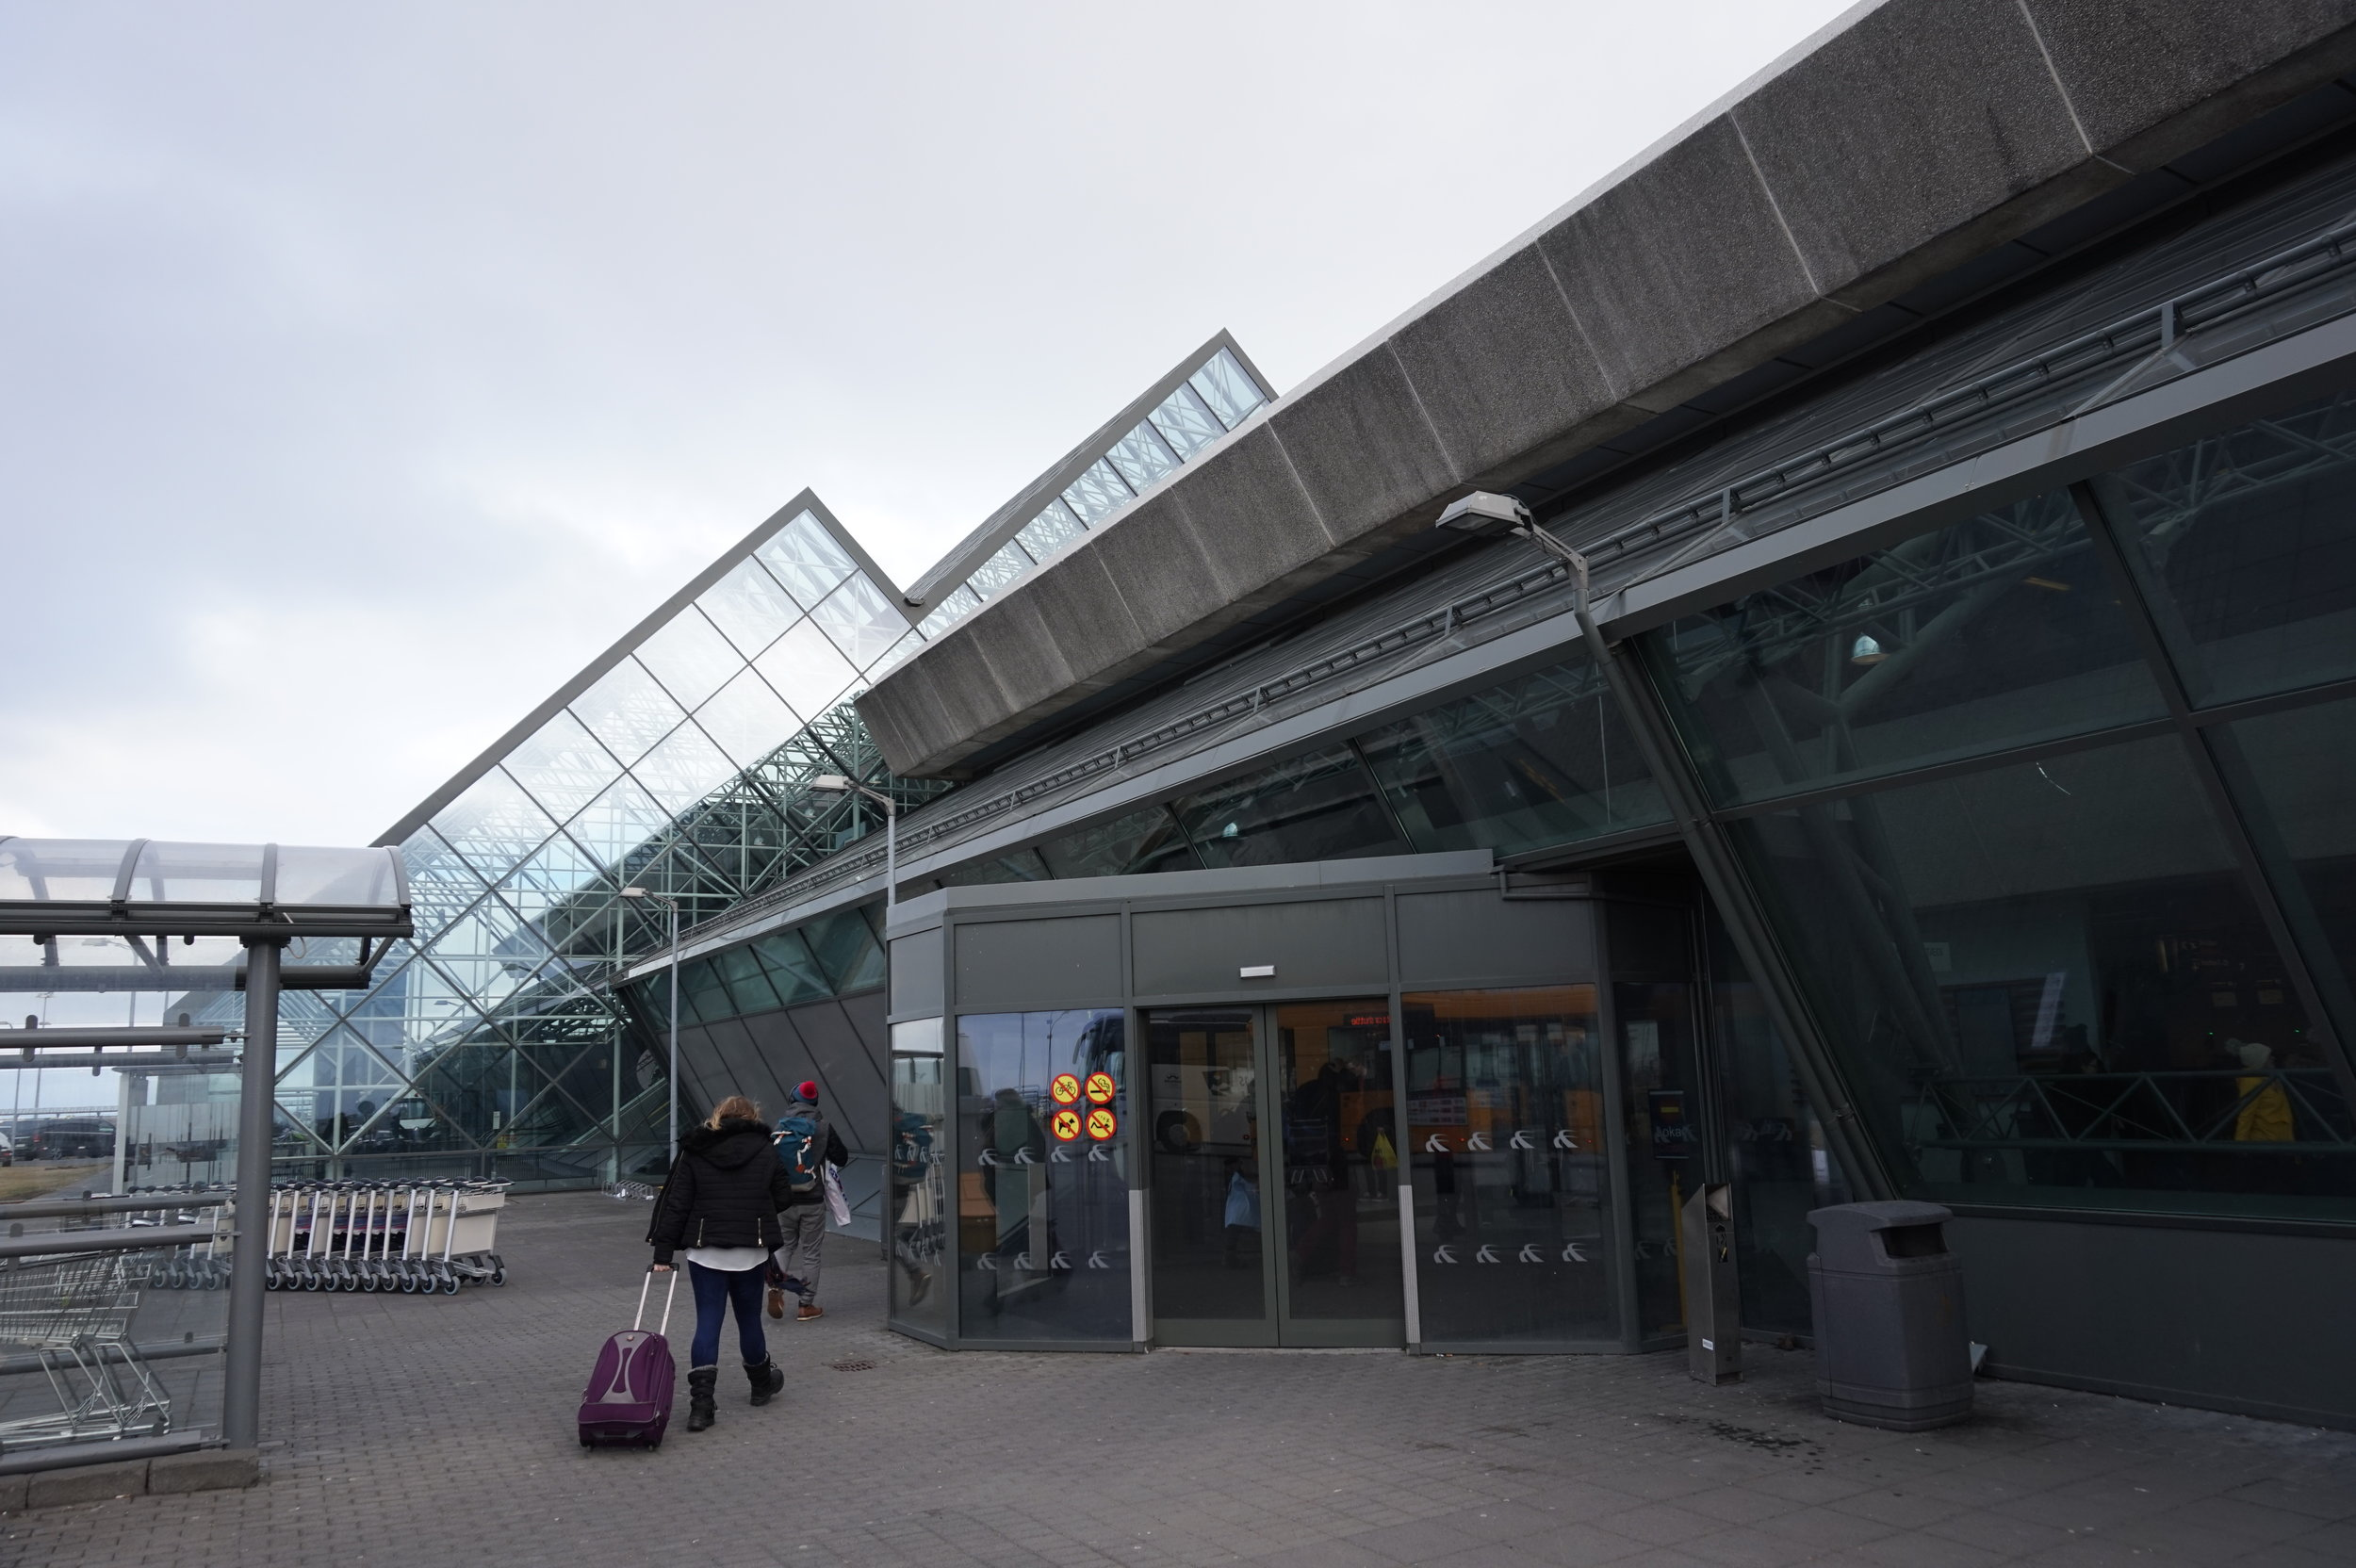 The entrance to Keflavík International Airport.